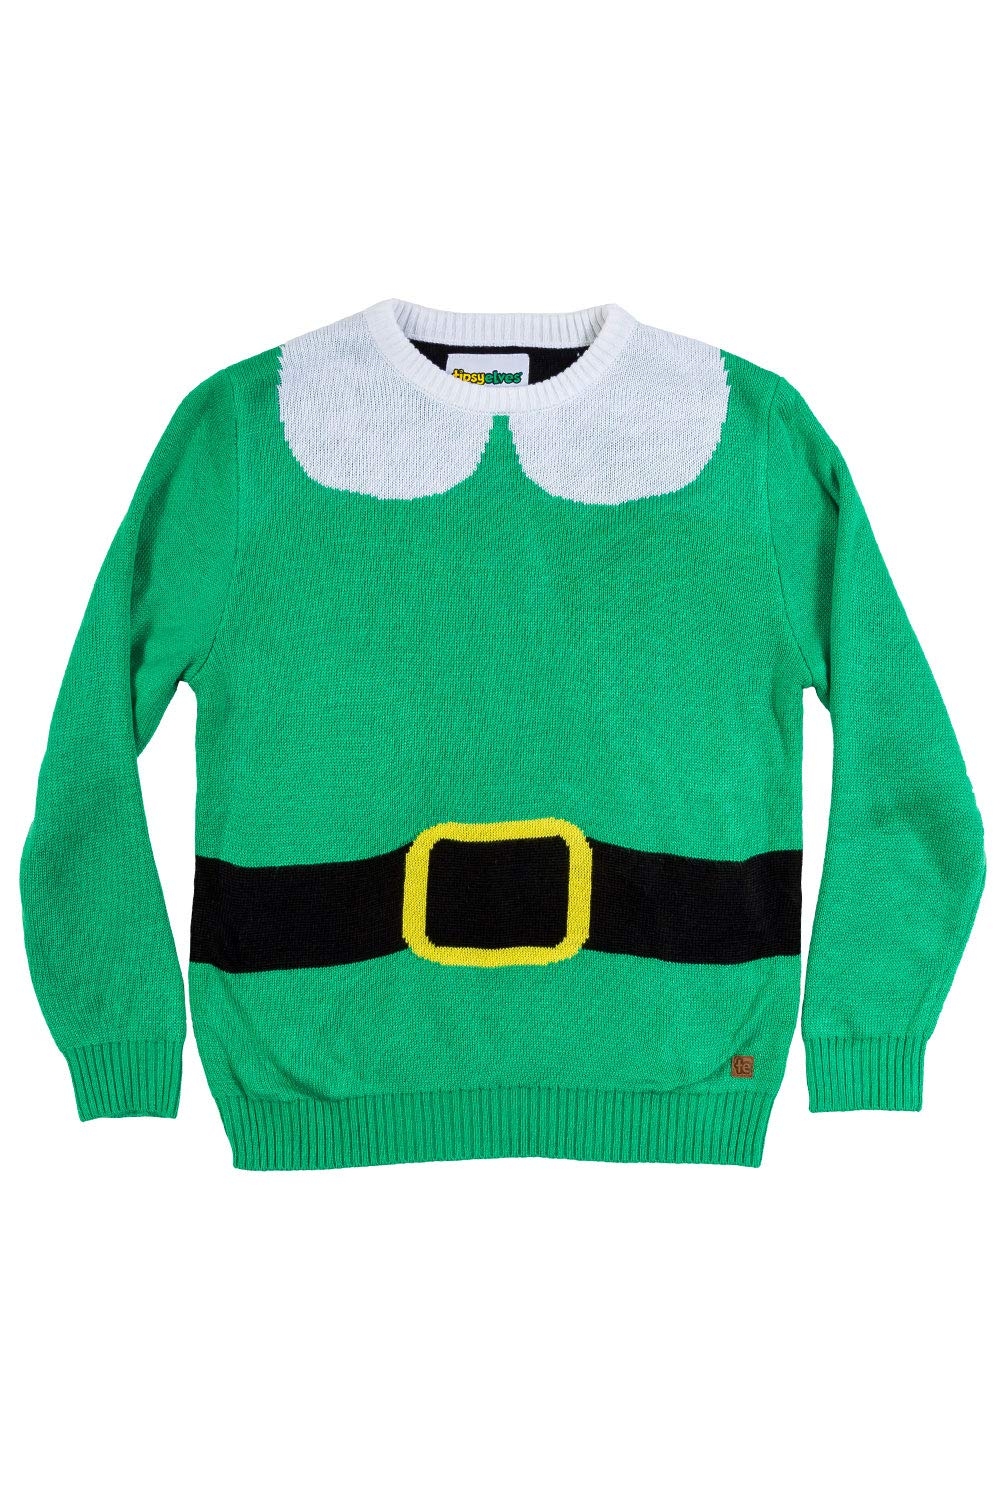 Tipsy Elves Youth Elf Ugly Christmas Sweater - Cute Christmas Sweater for Child: X-Small Green